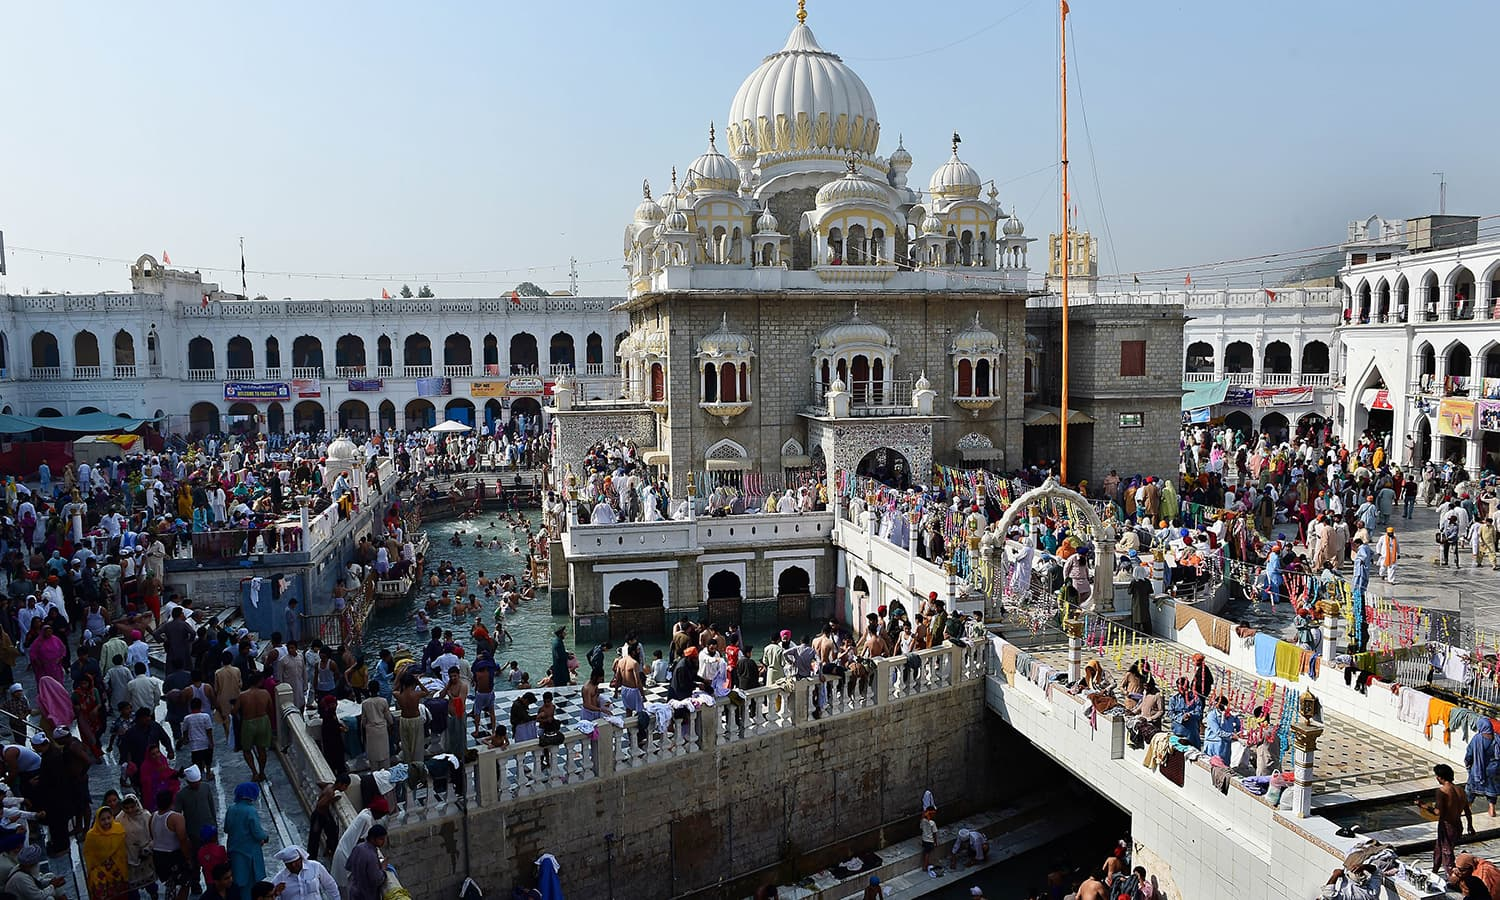 Sikh pilgrims gather at the Gurdwara Panja Sahib, one of Sikhism's most holy places, during the Vaisakhi festival in Hasan Abdal, about 48 kms from Rawalpindi.— AFP